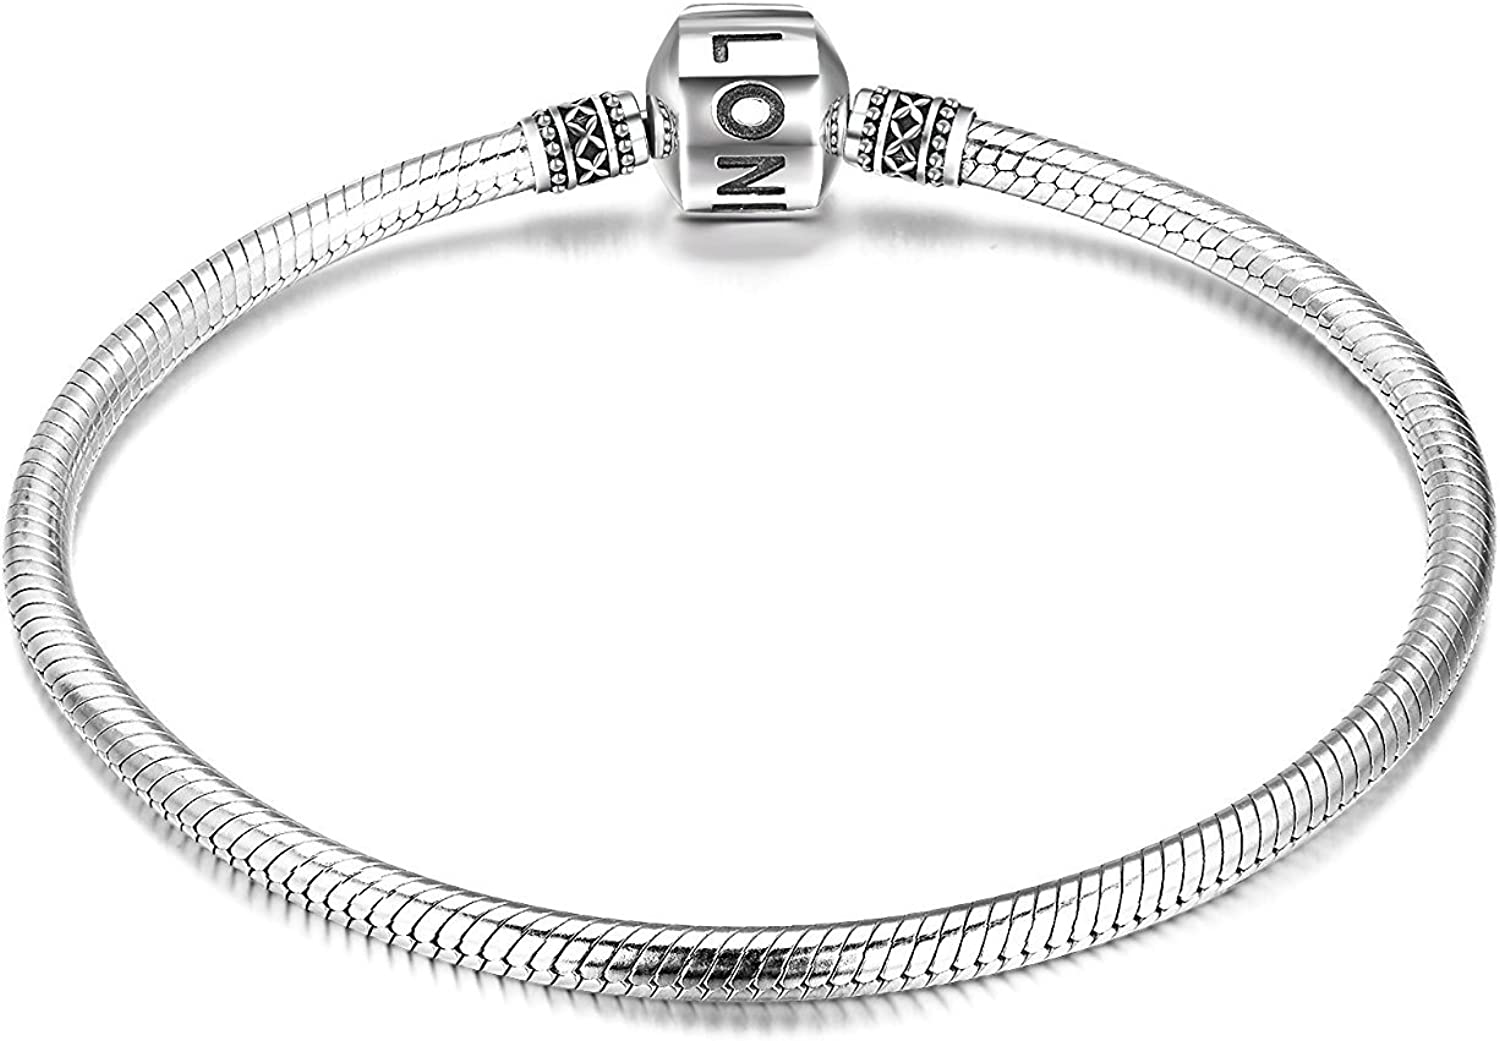 LONAGO Genuine Charm Bracelet 925 Sterling Silver Snake Chain Bangle Barrel Clasp Jewelry Fit Pandora Charm Birthday Gift for Women